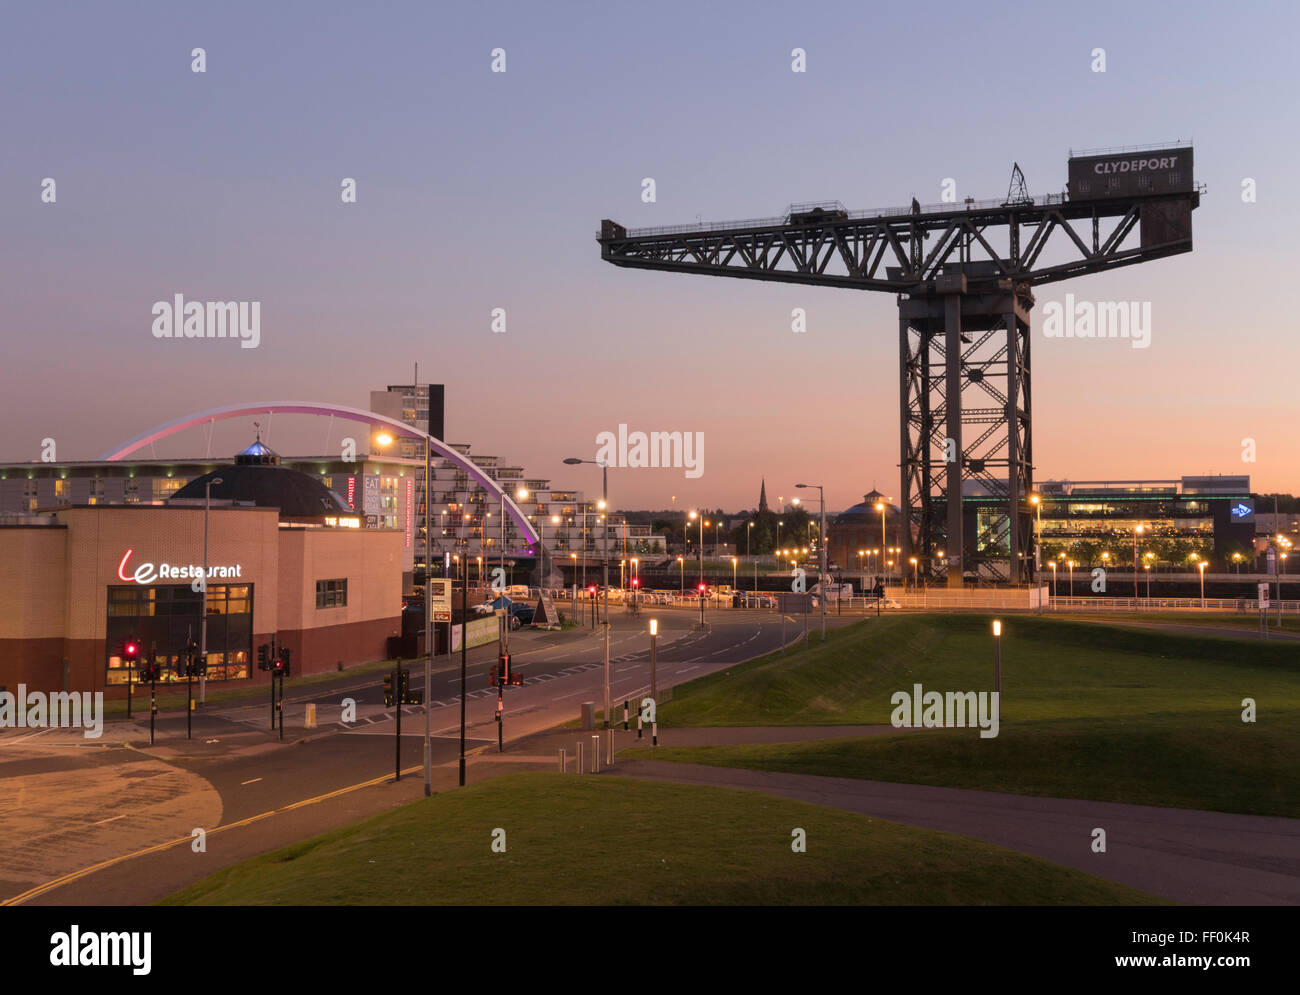 Clydeport titan crane, Finnieston,Glasgow at dusk, looking south. - Stock Image